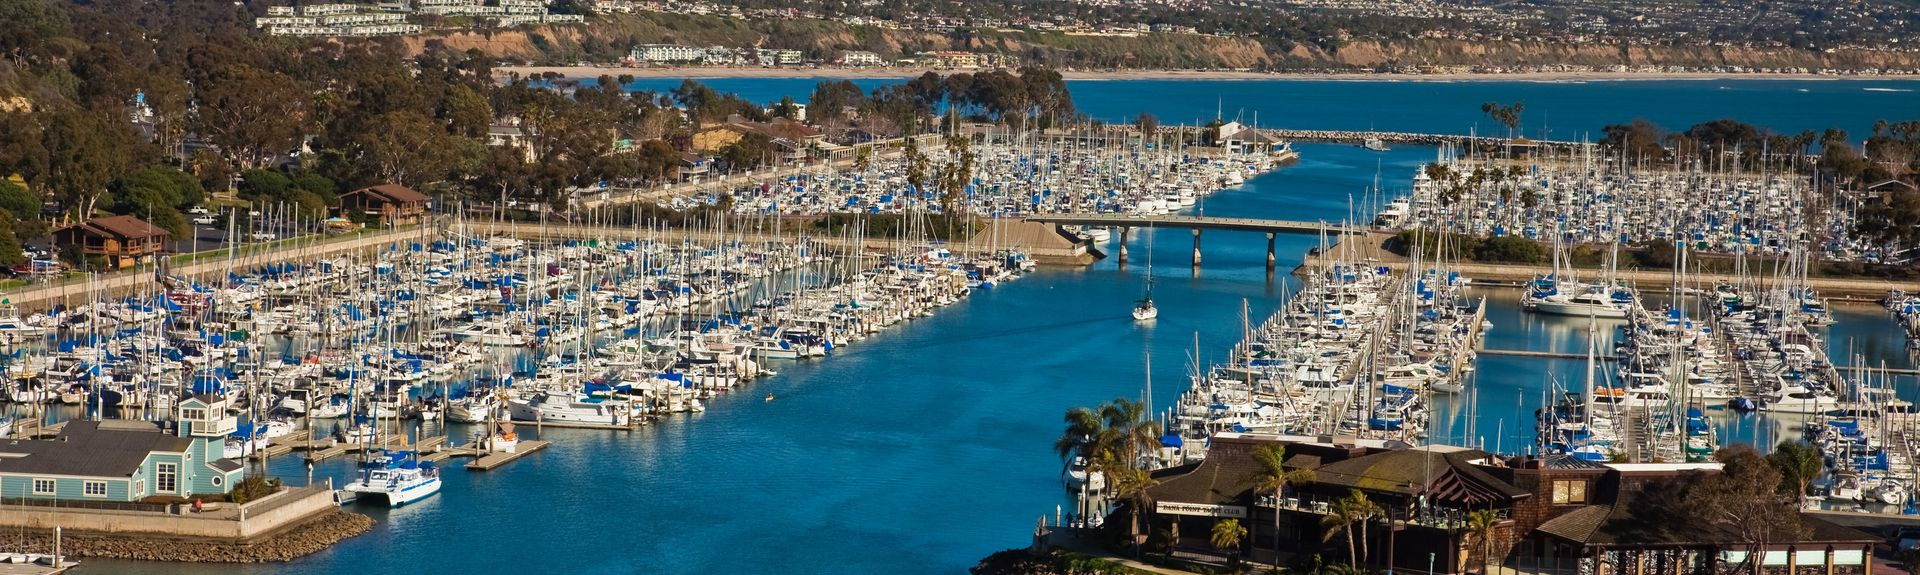 Vrbo | Dana Point, CA Vacation Rentals: house rentals & more